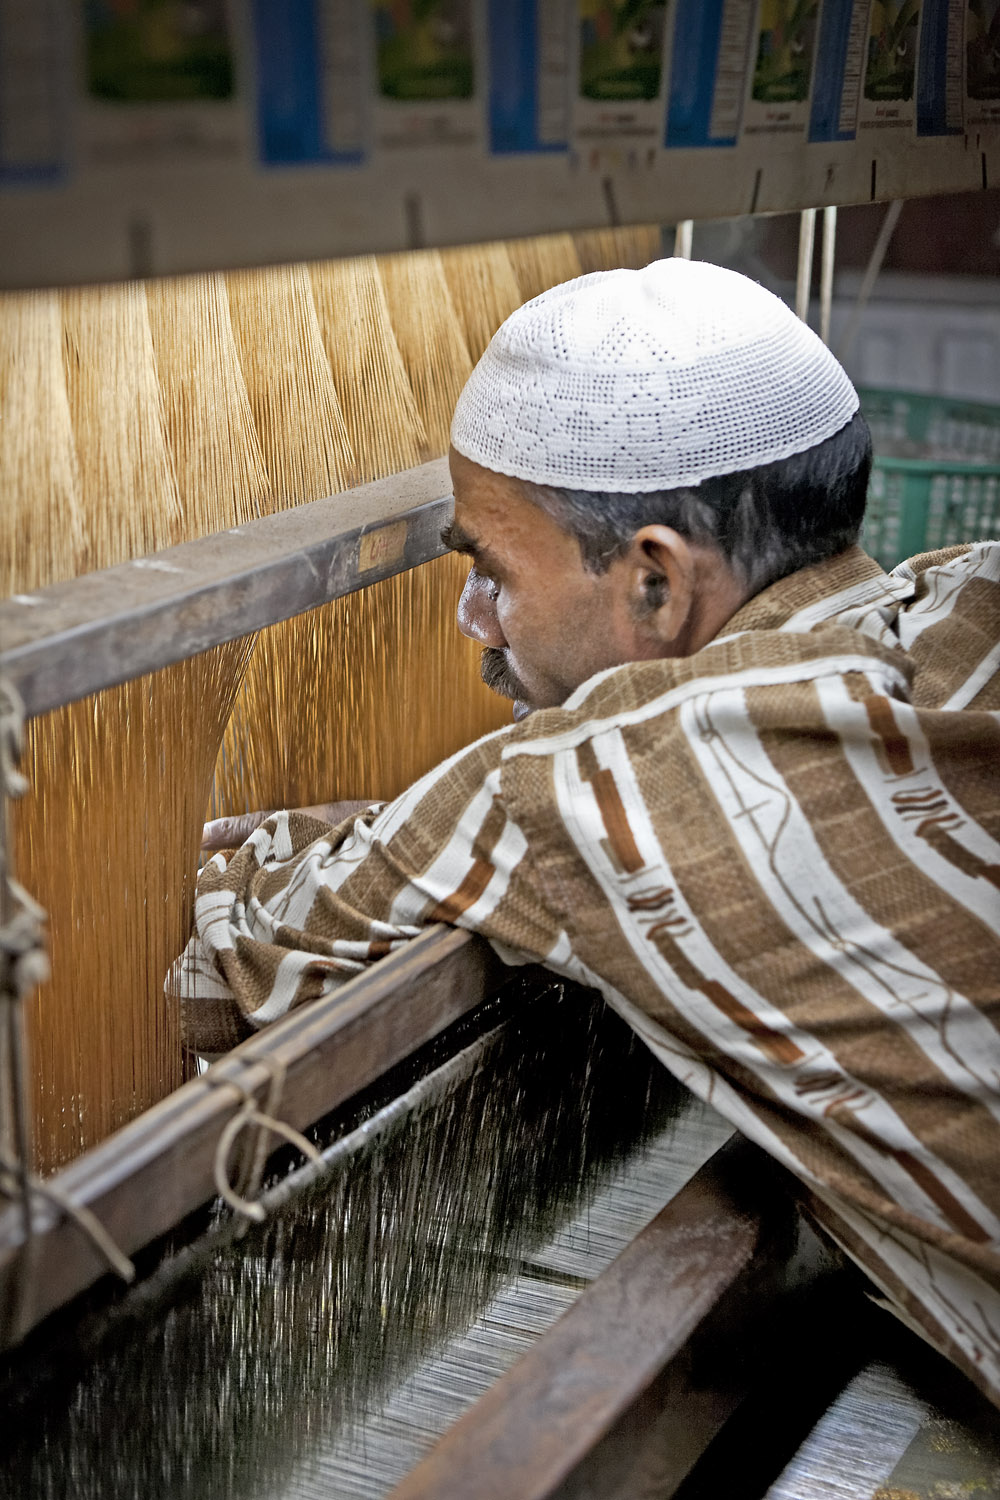 Cleaning the machine loom, Varanasi